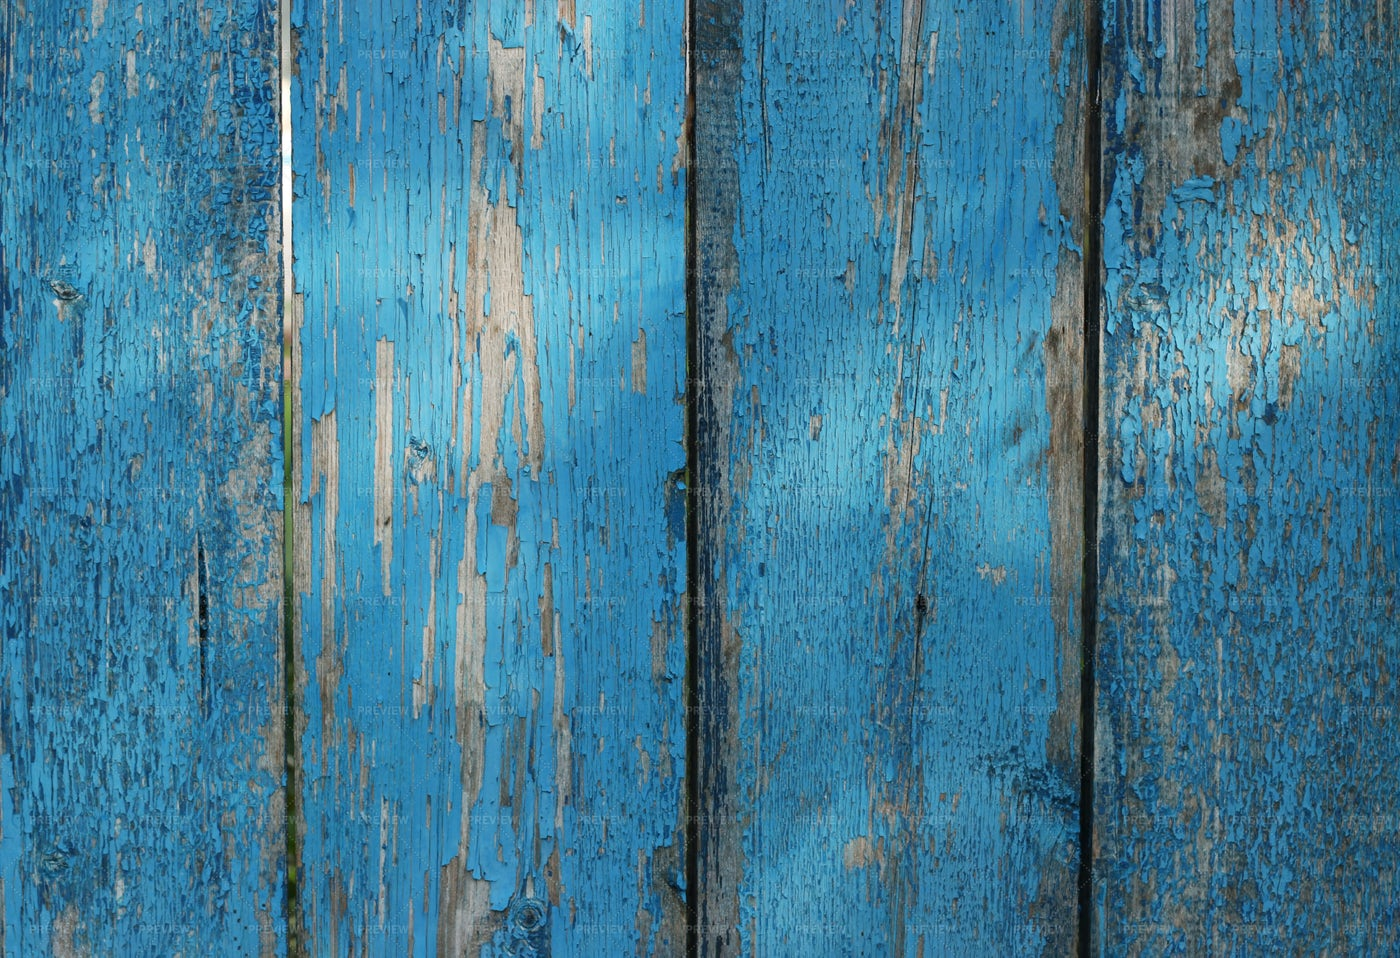 Old Blue Wooden Planks: Stock Photos